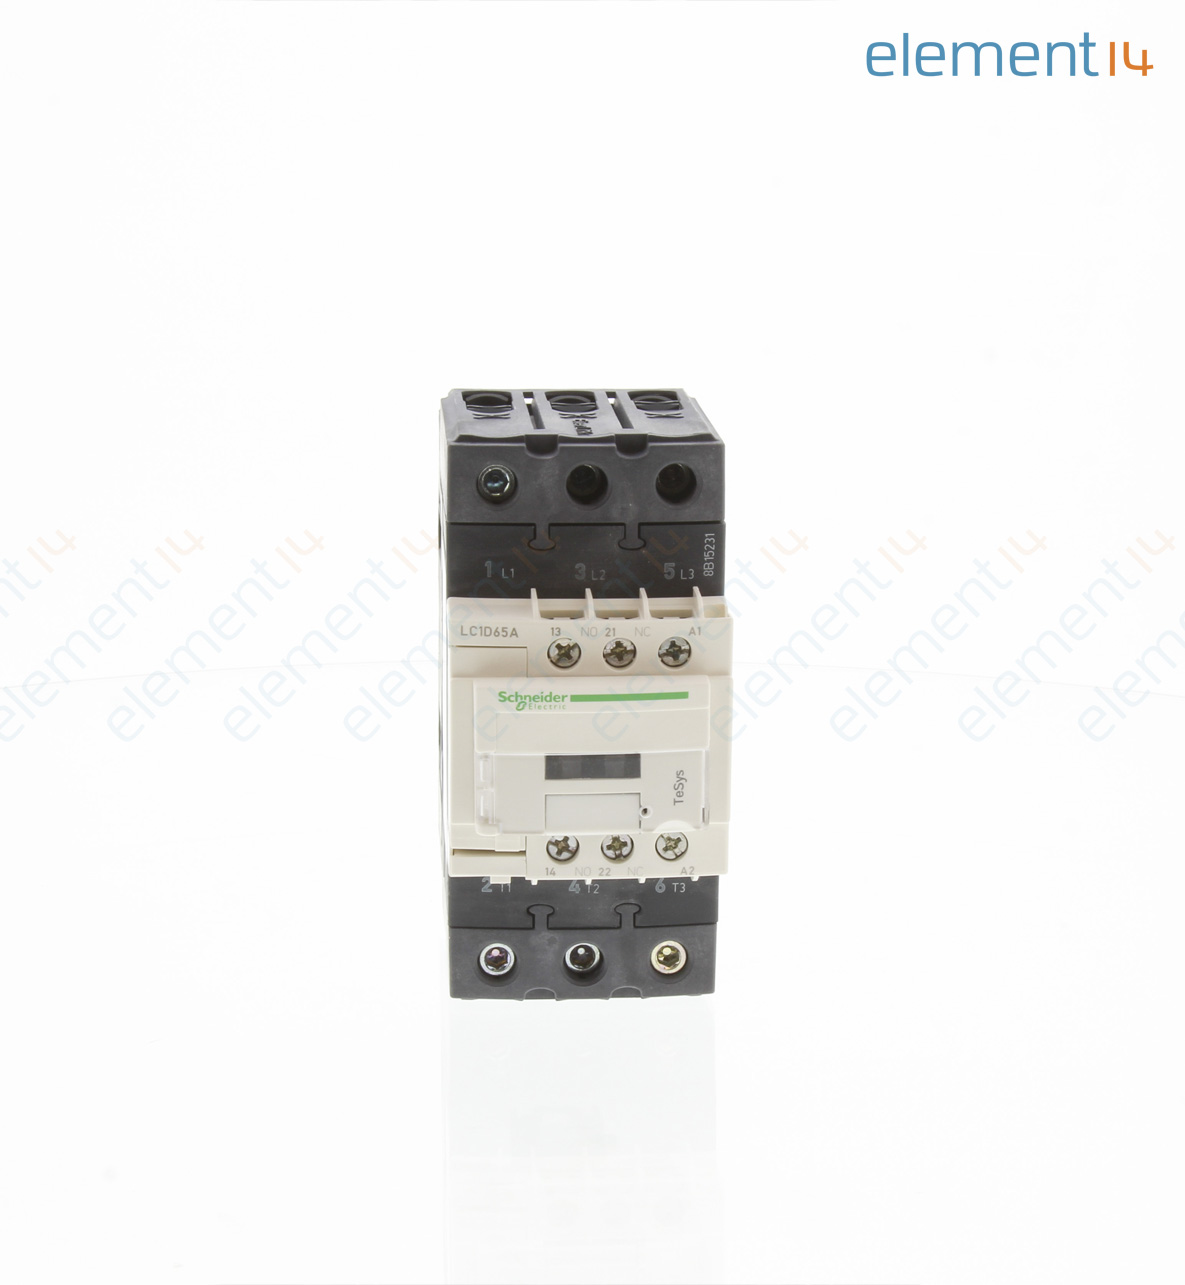 lc1d65am7 schneider electric contactor tesys d contactor 690 manufacturer schneider electric schneider electric